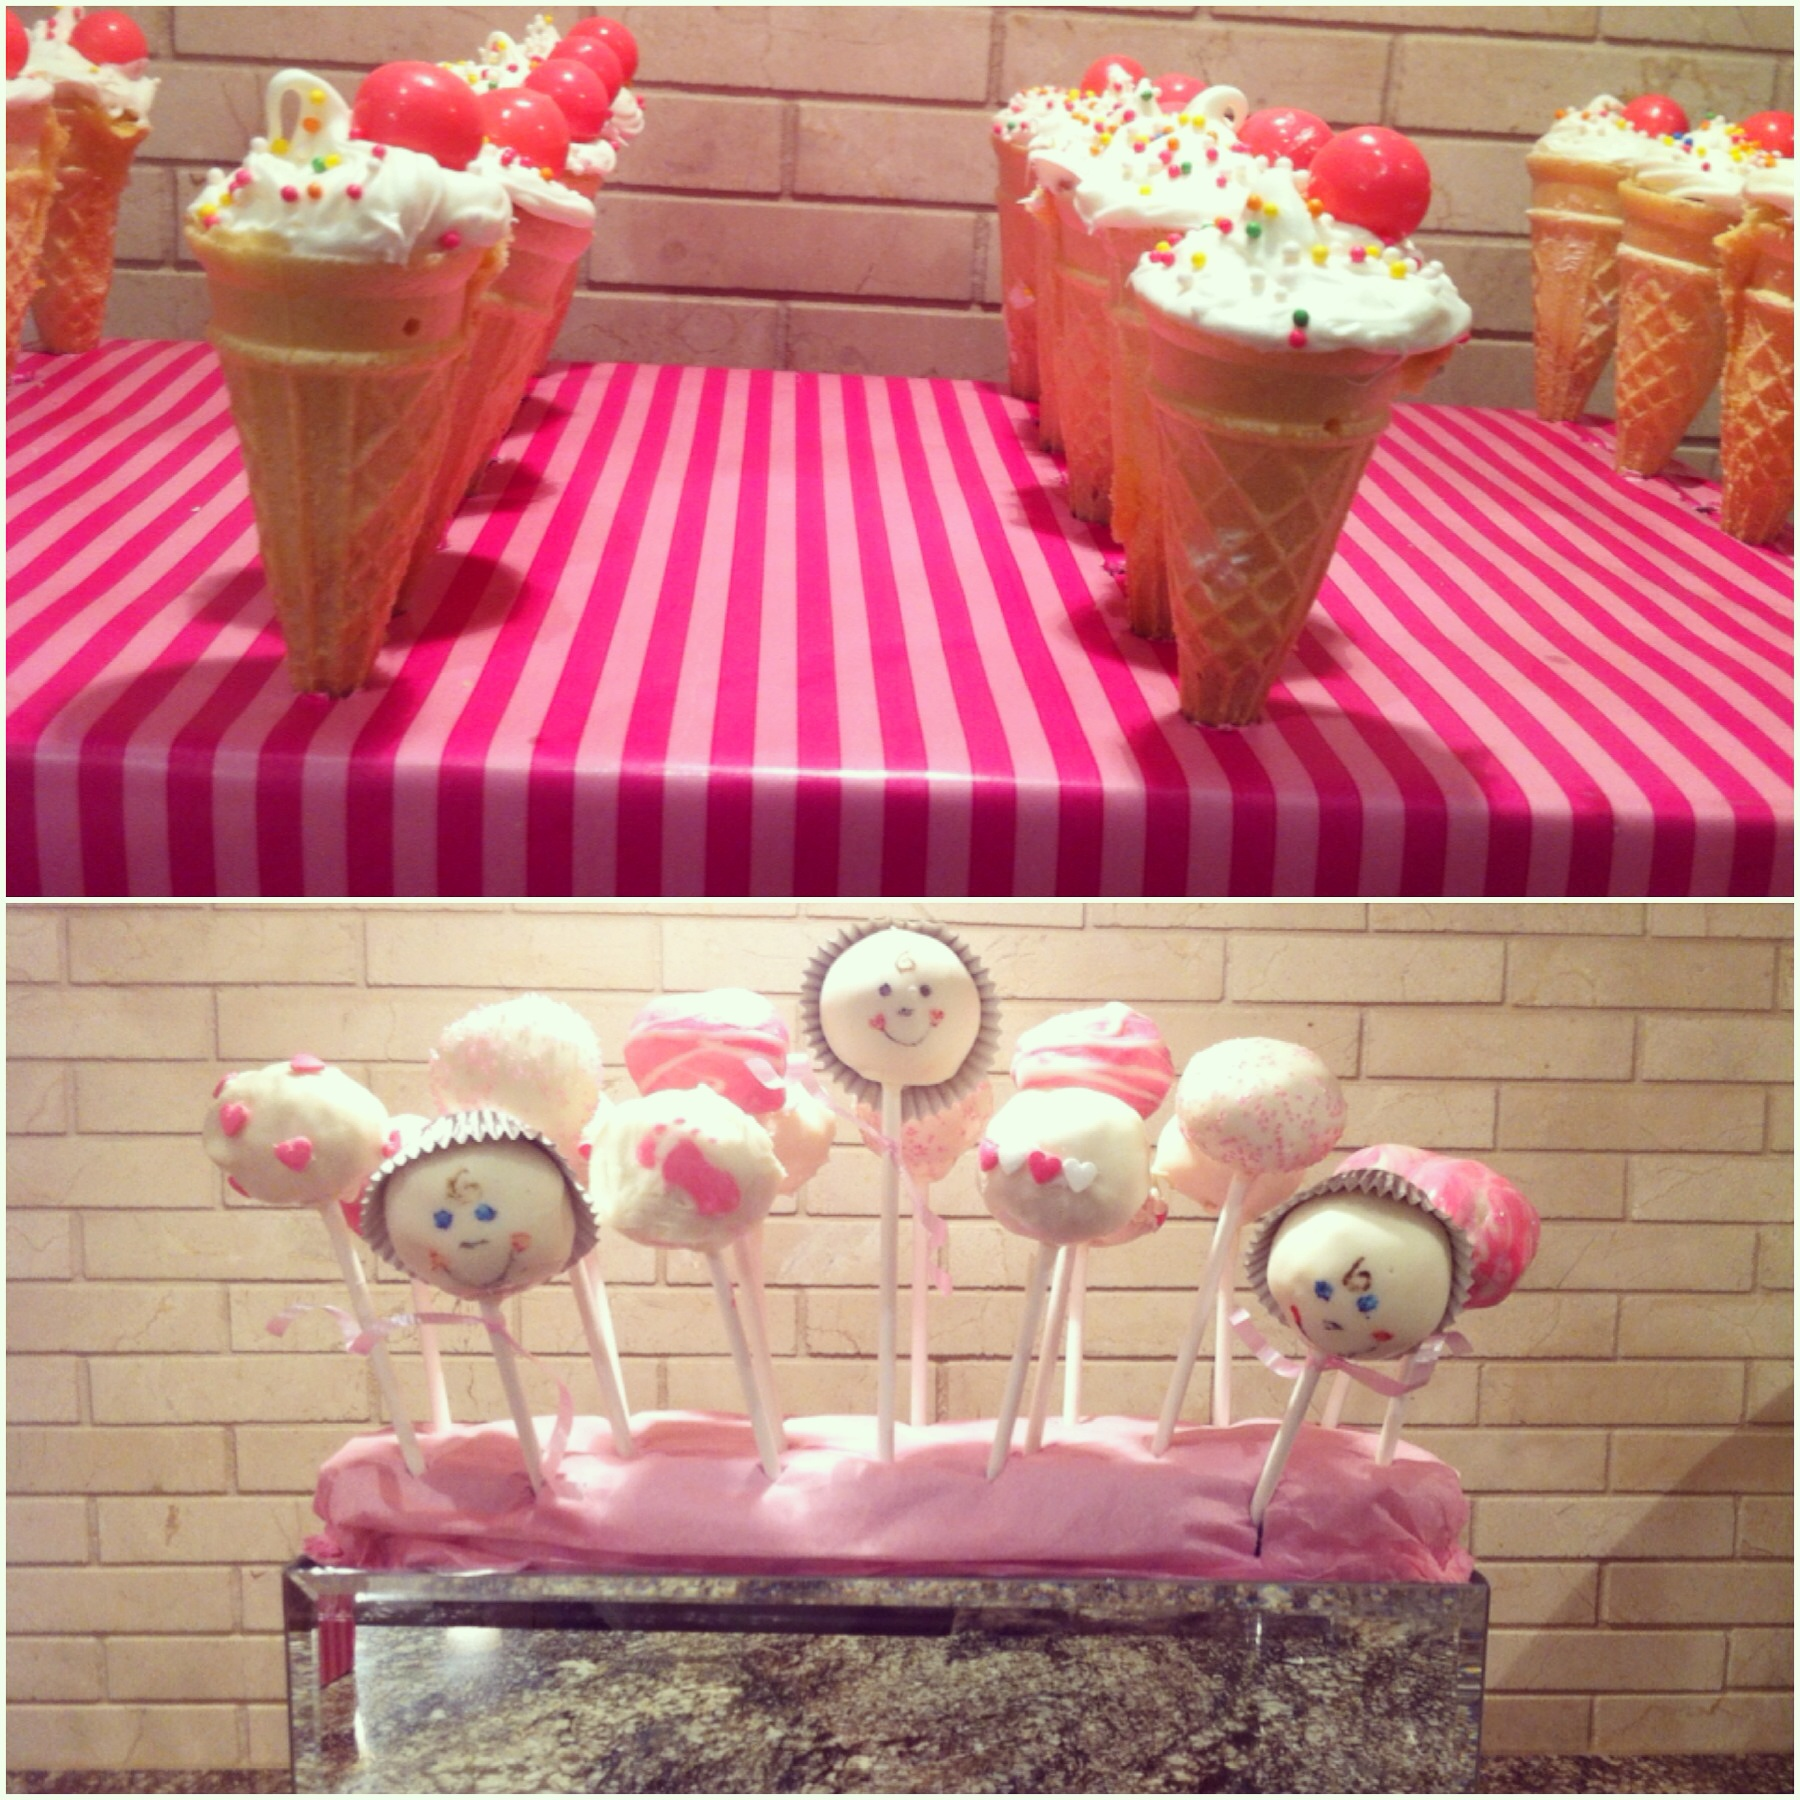 Mini Ice-Cream Cone Cupcakes & Cake-Pops (Baby Shower Edition)